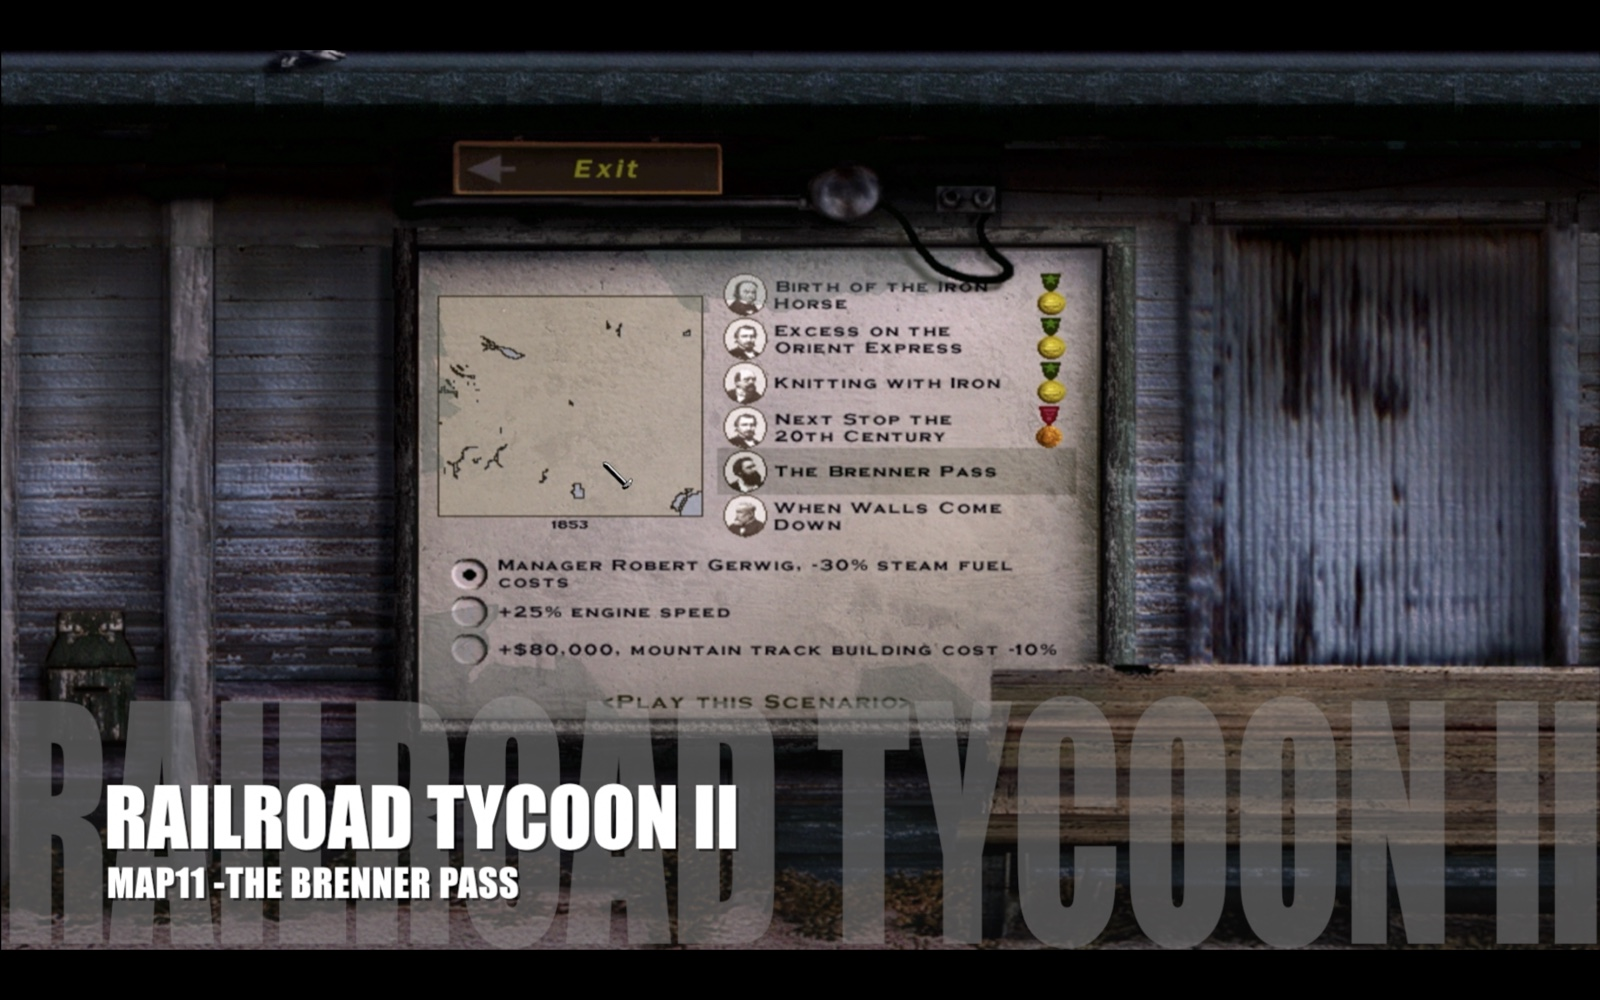 Railroad Tycoon II – Map 11 – The Brenner Pass